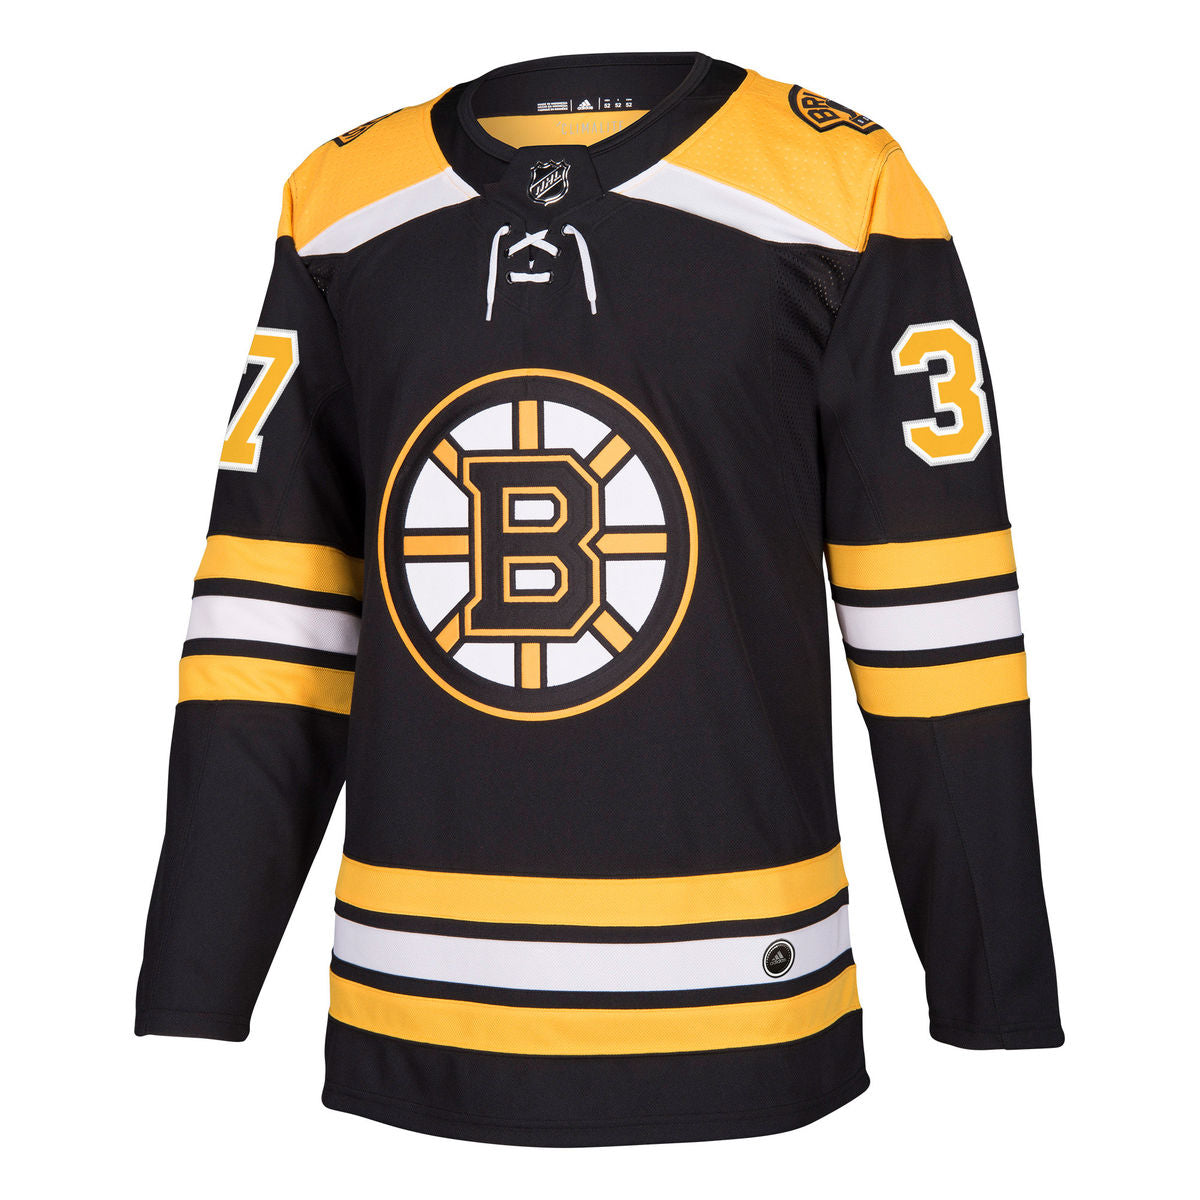 separation shoes ca897 afb2a Boston Bruins Zdeno Chara NHL Authentic Pro Home Jersey